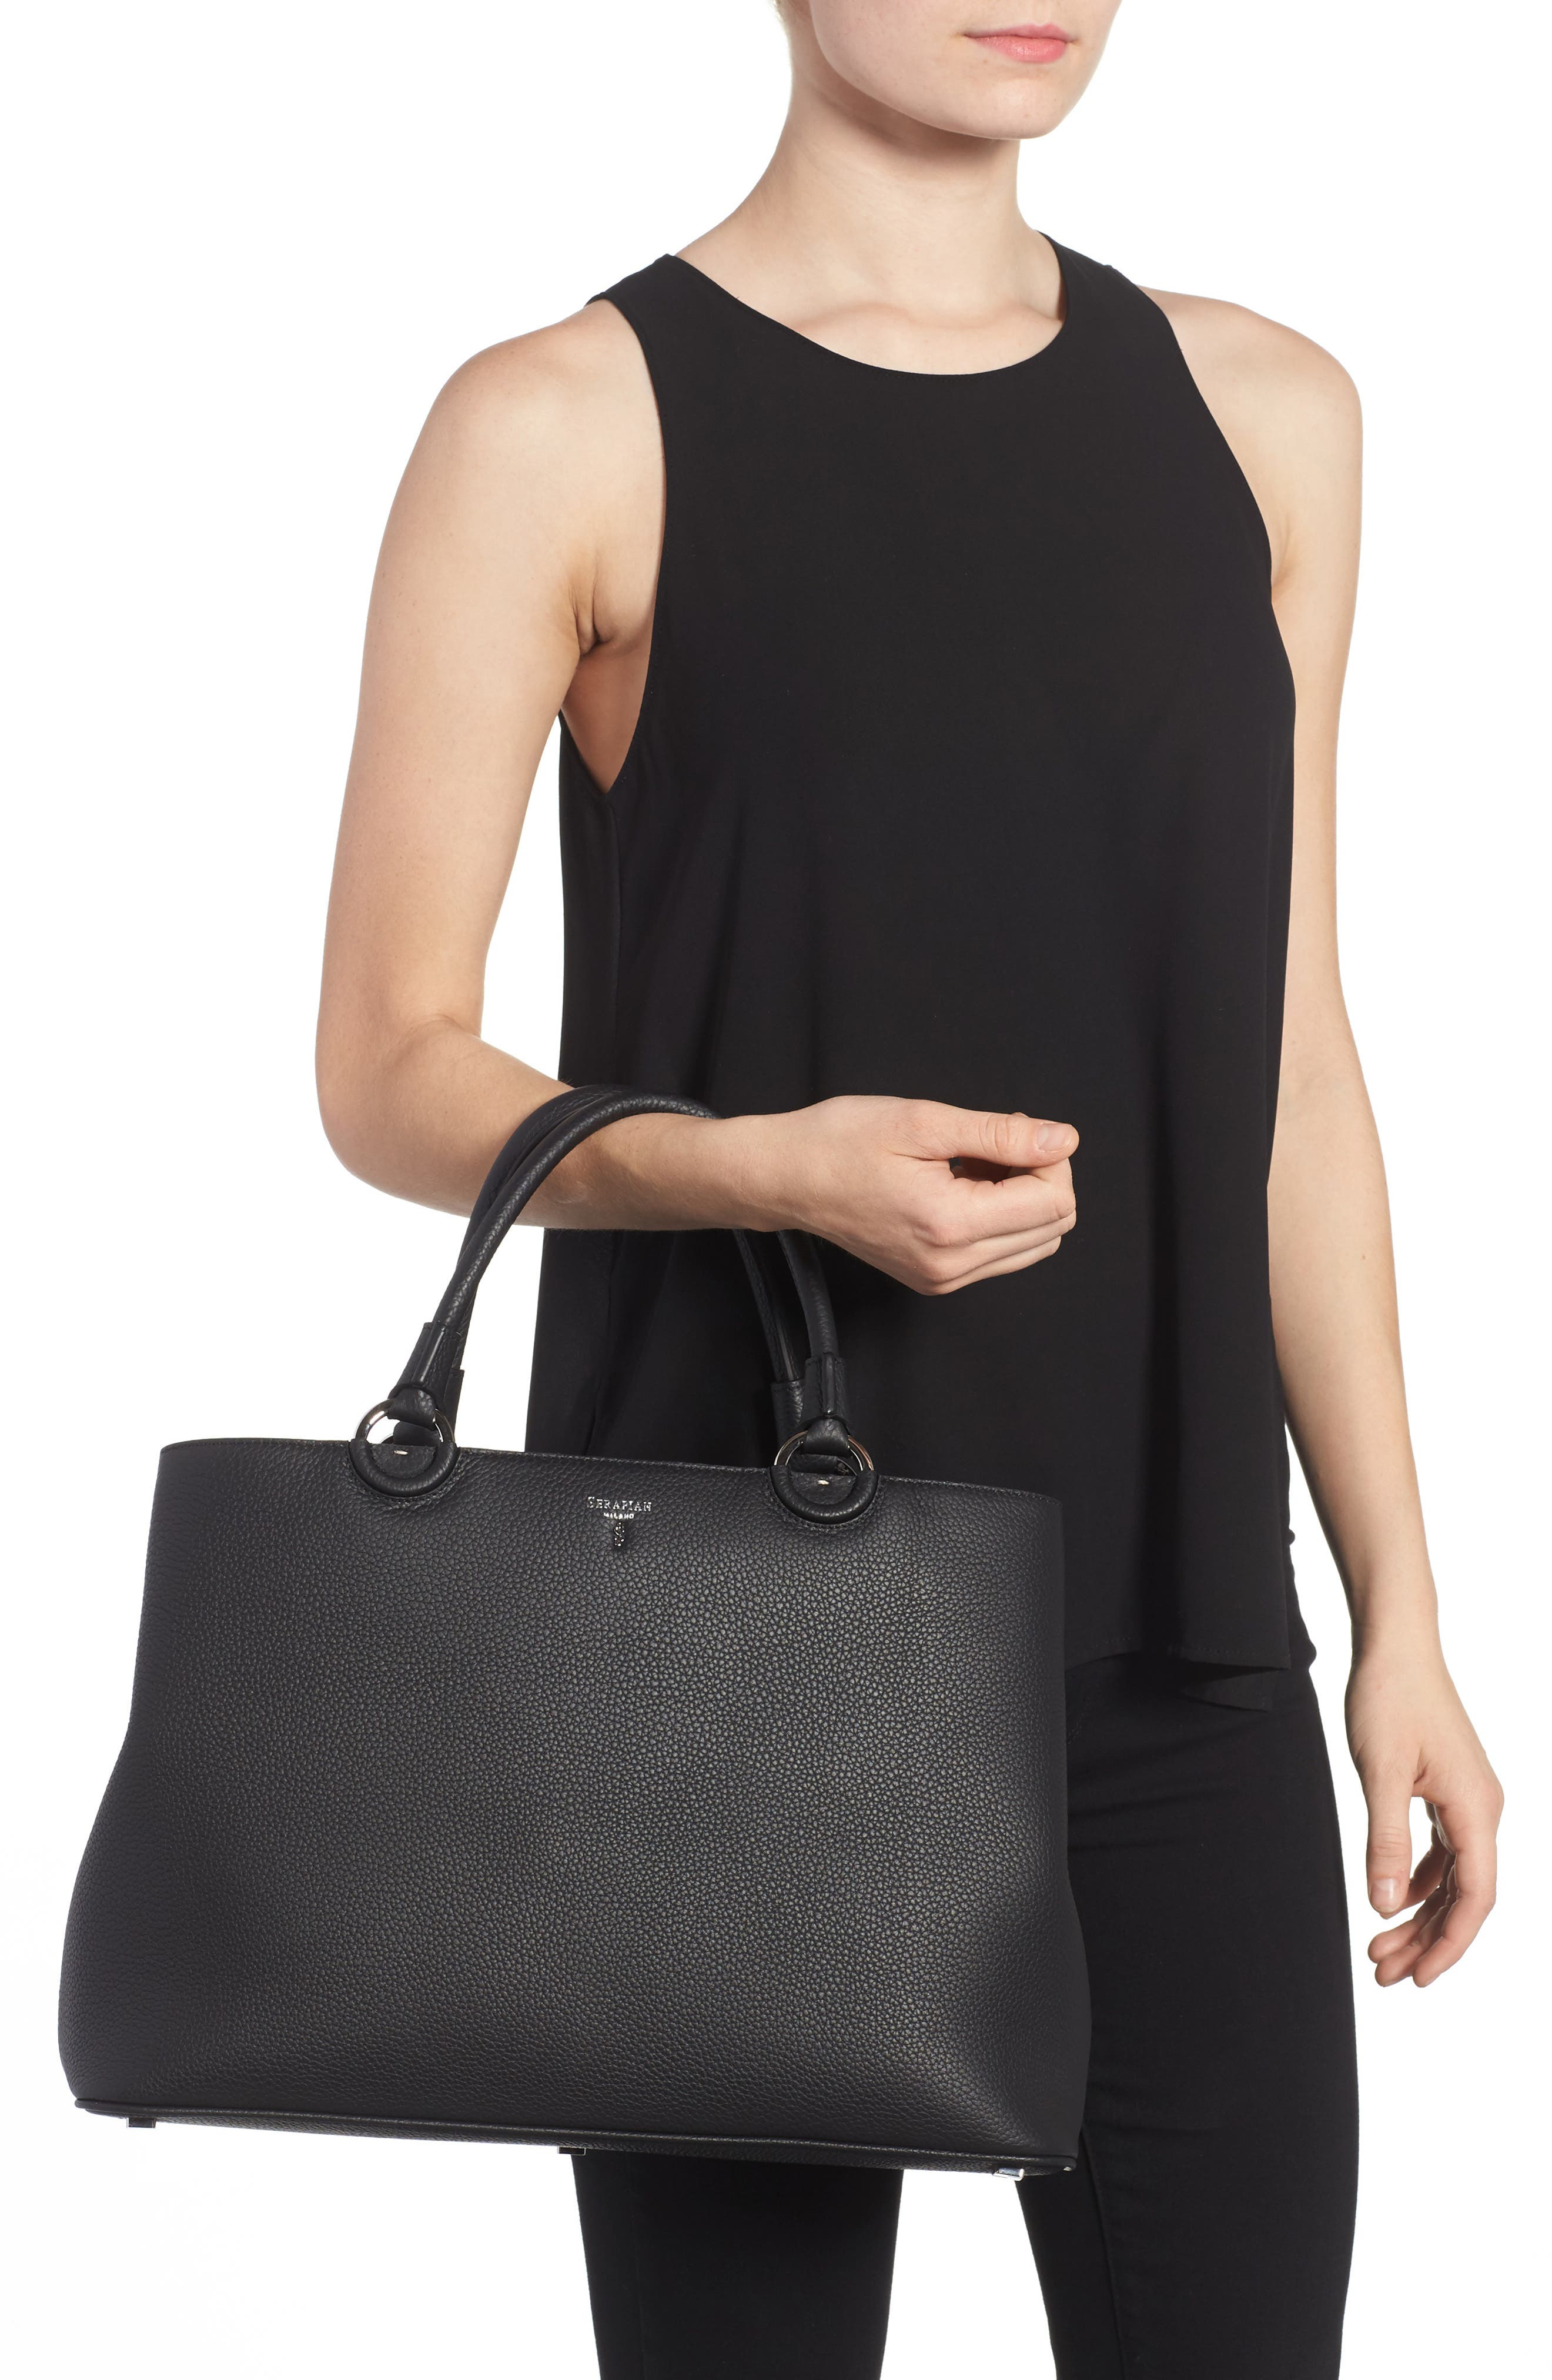 Veronica Cachemire Leather Tote,                             Alternate thumbnail 2, color,                             001